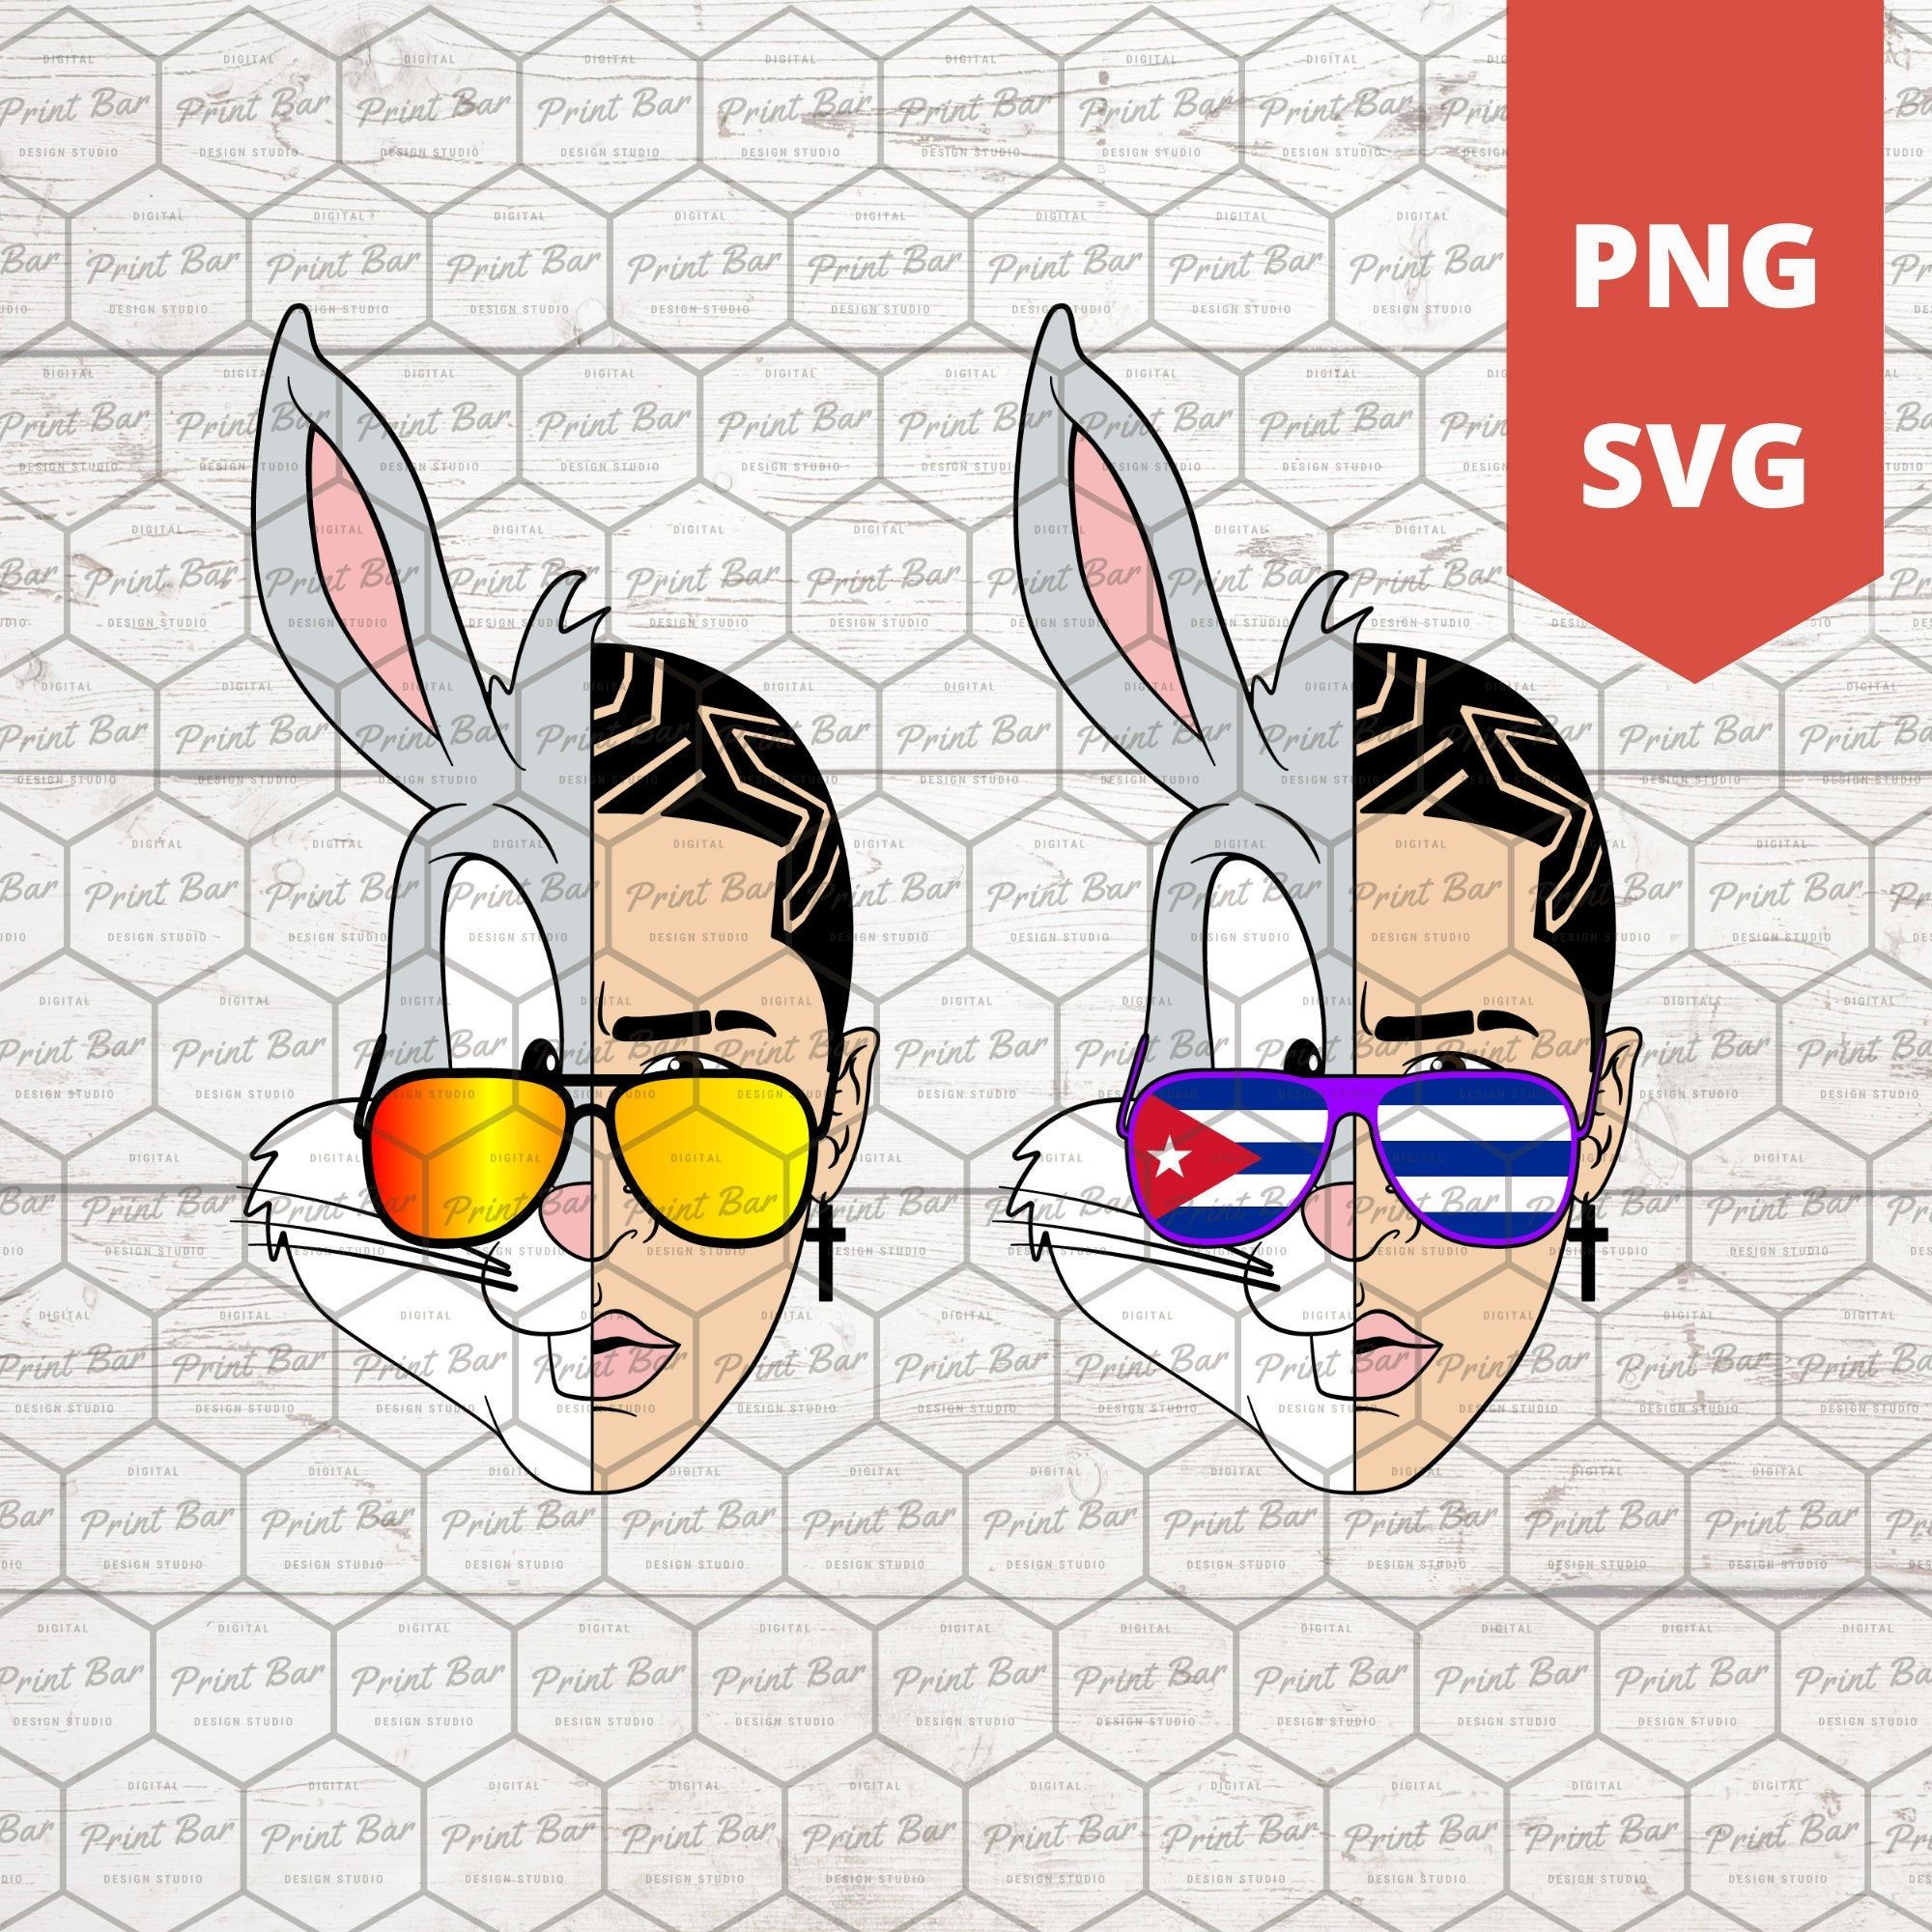 Bad Bunny Face Svg Png Etsy In 2020 Bunny Svg Bunny Face Bunny Party